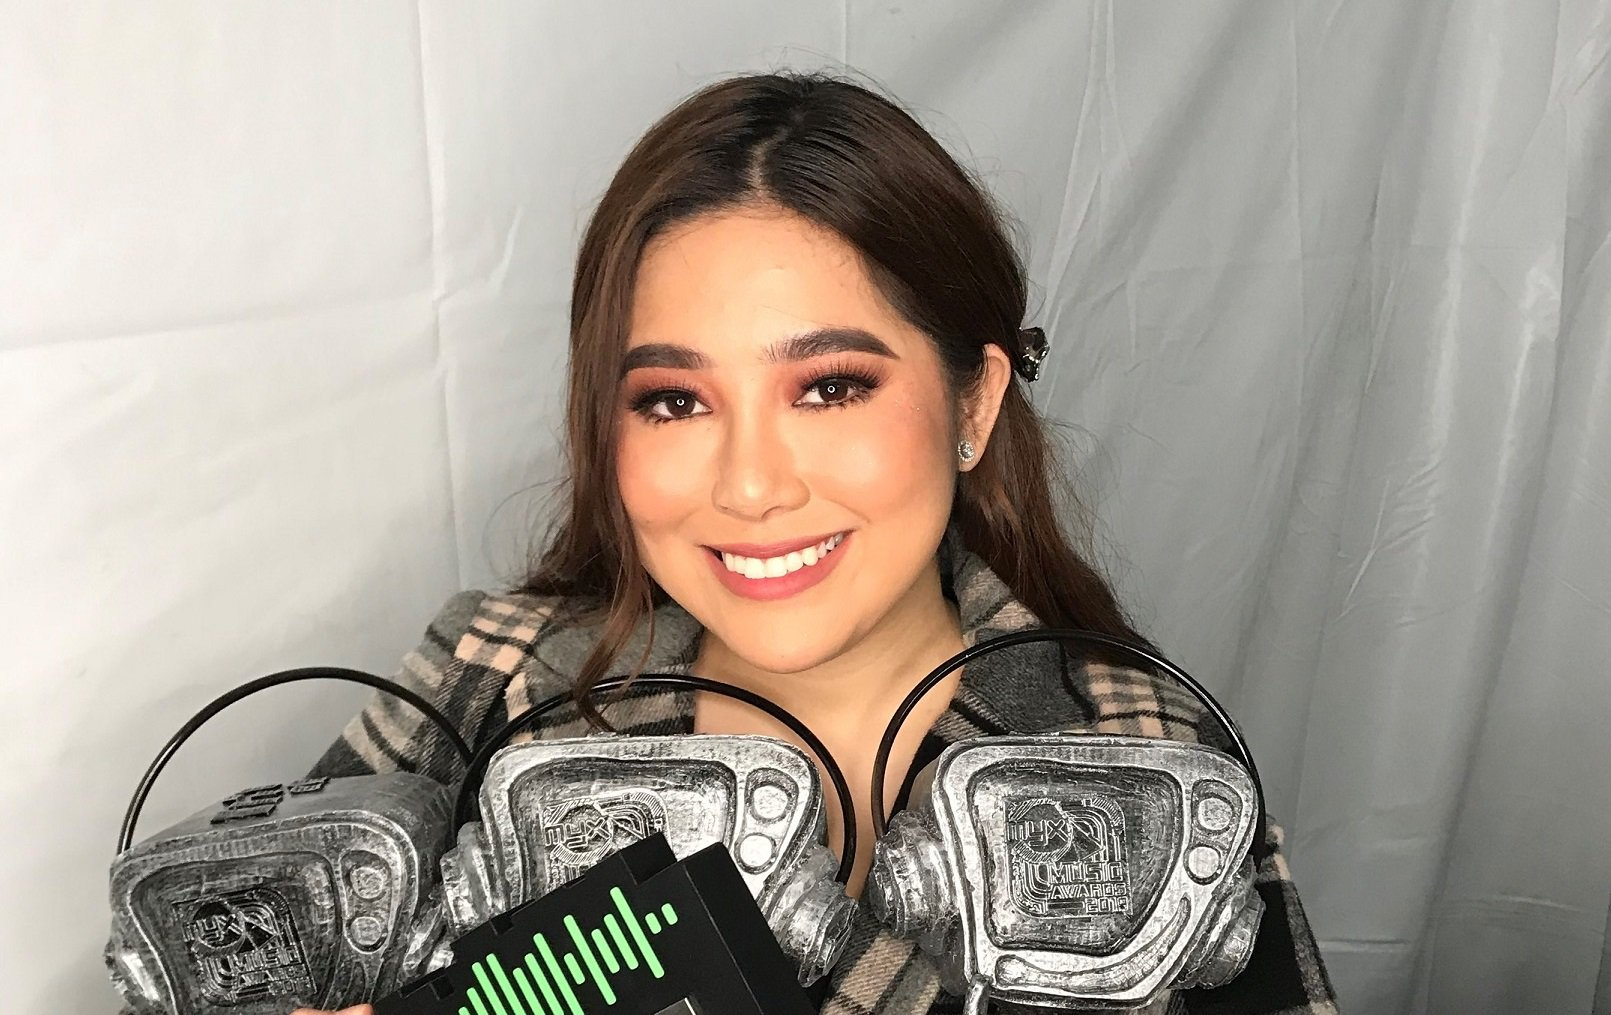 Moira gears up for first Big Dome concert, launch of international album